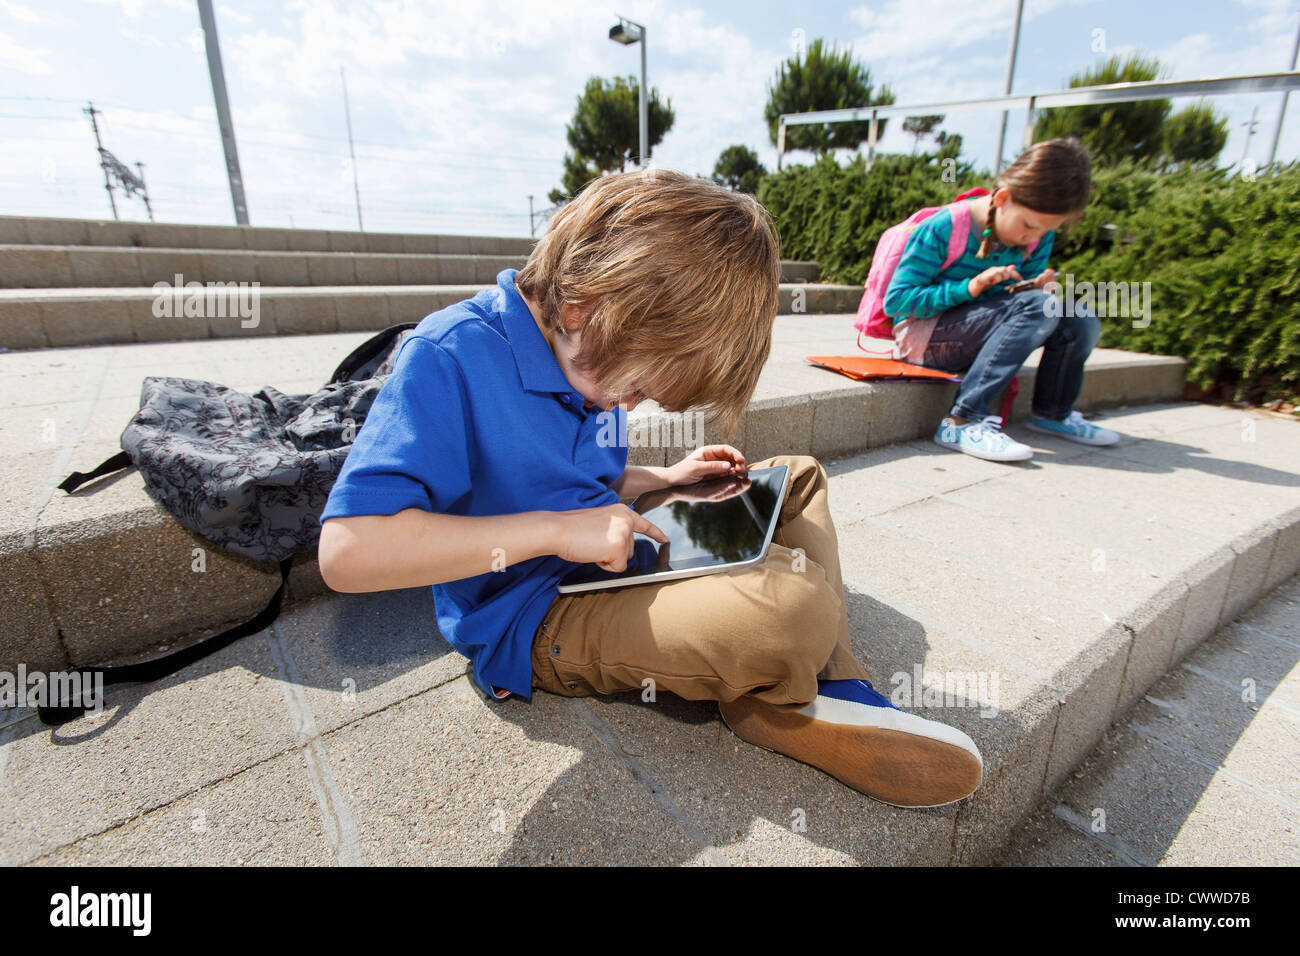 Boy using tablet computer outdoors - Stock Image